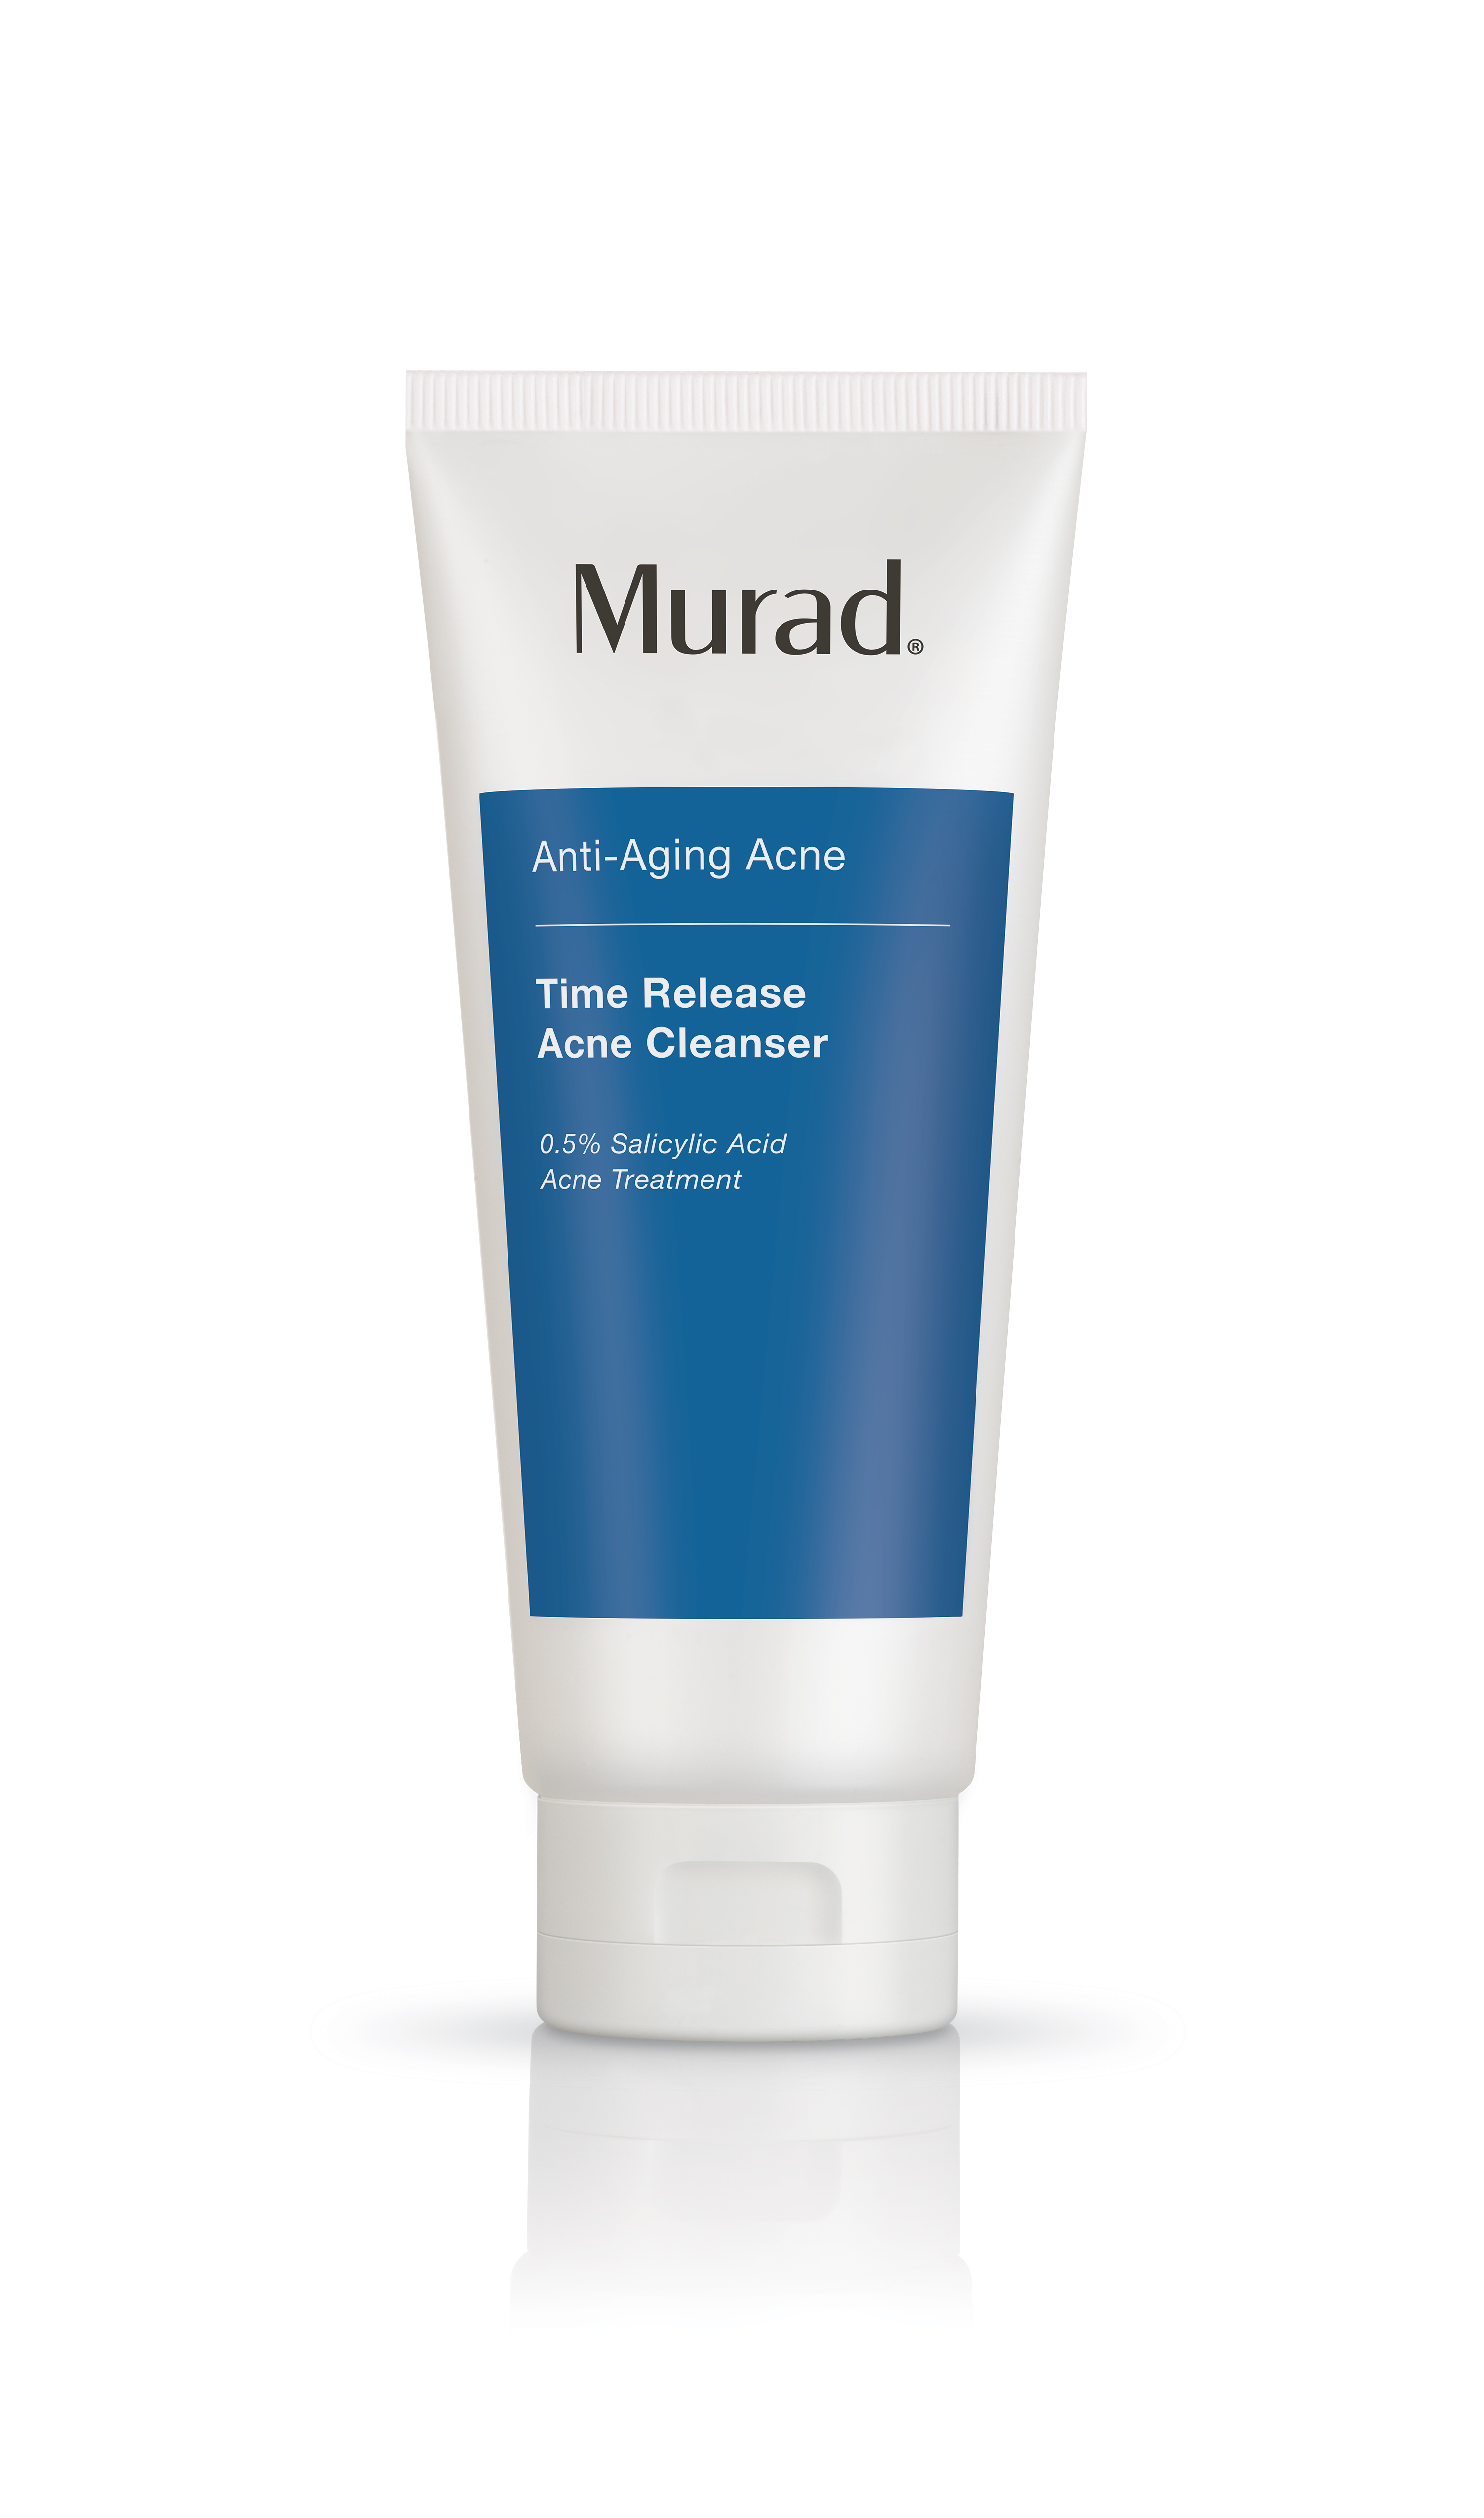 Murad Anti-Aging Acne Time Release Acne Cleanser - Salicylic Acid Cleanser for Blemish-Prone Skin - Anti-Aging Cleanser… 5